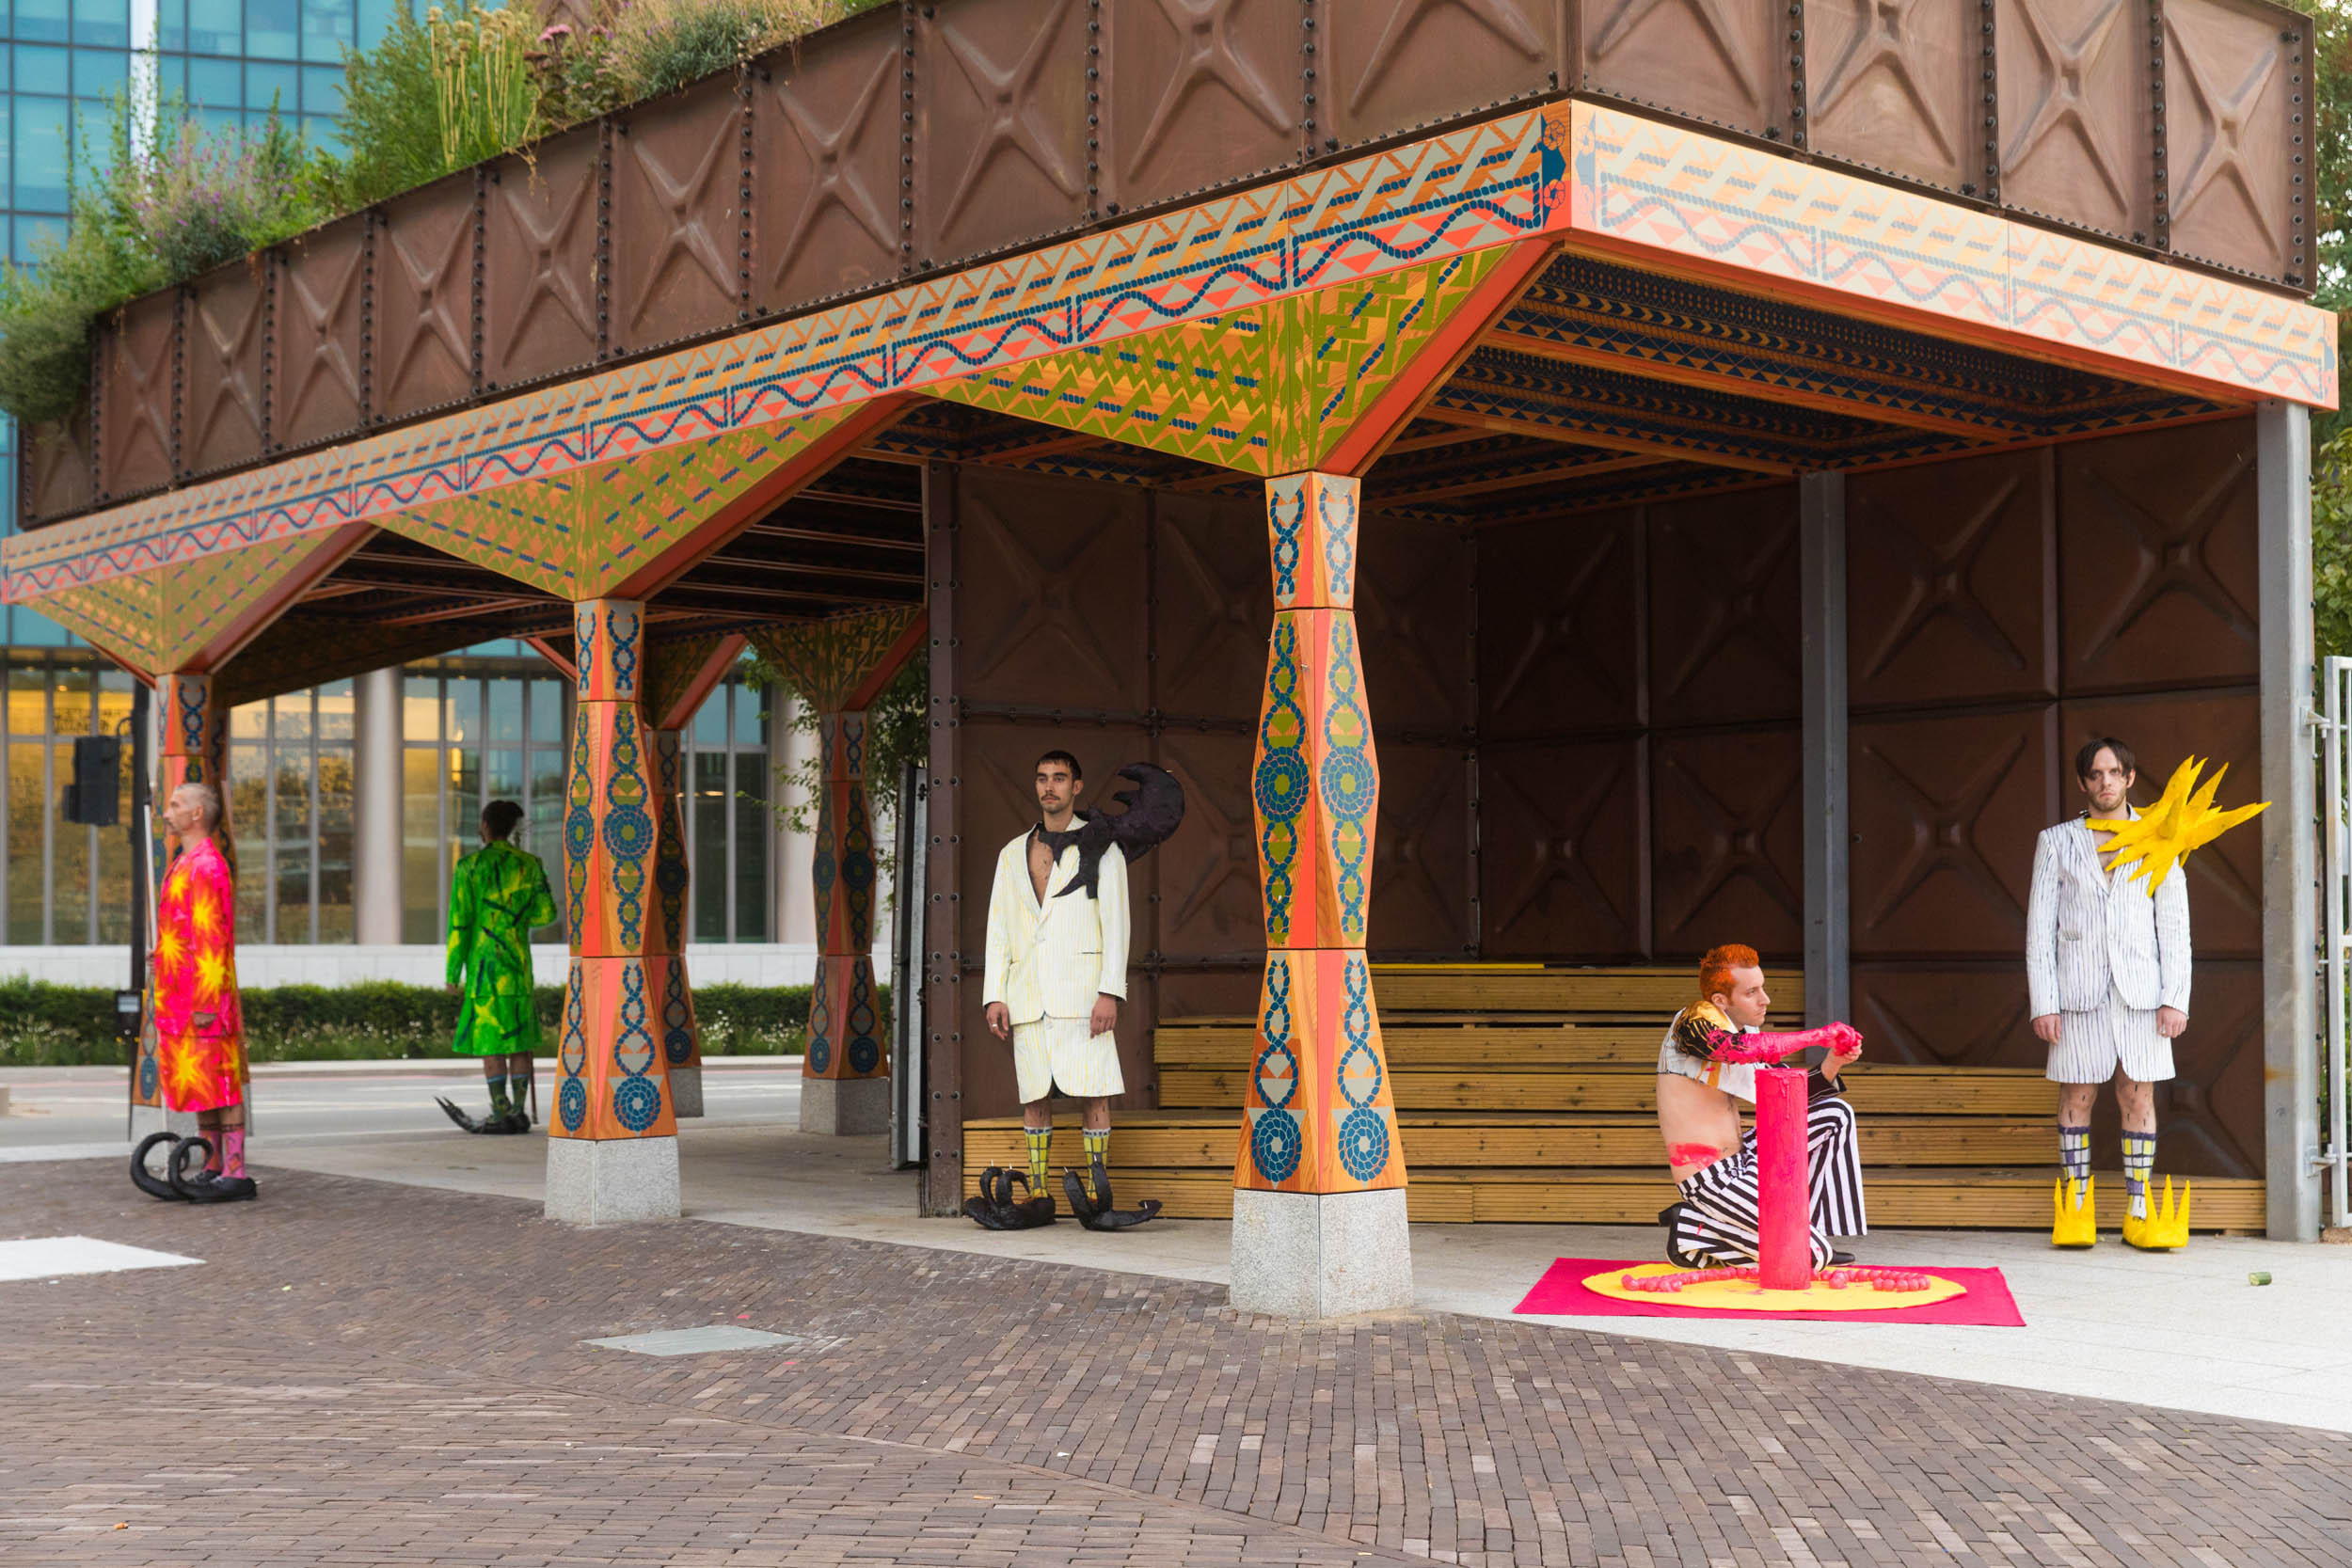 Five Knaves males masculinity in front of the US embassy under the Nine Elms pavilion wearing very colourful clothes and evident protrusions